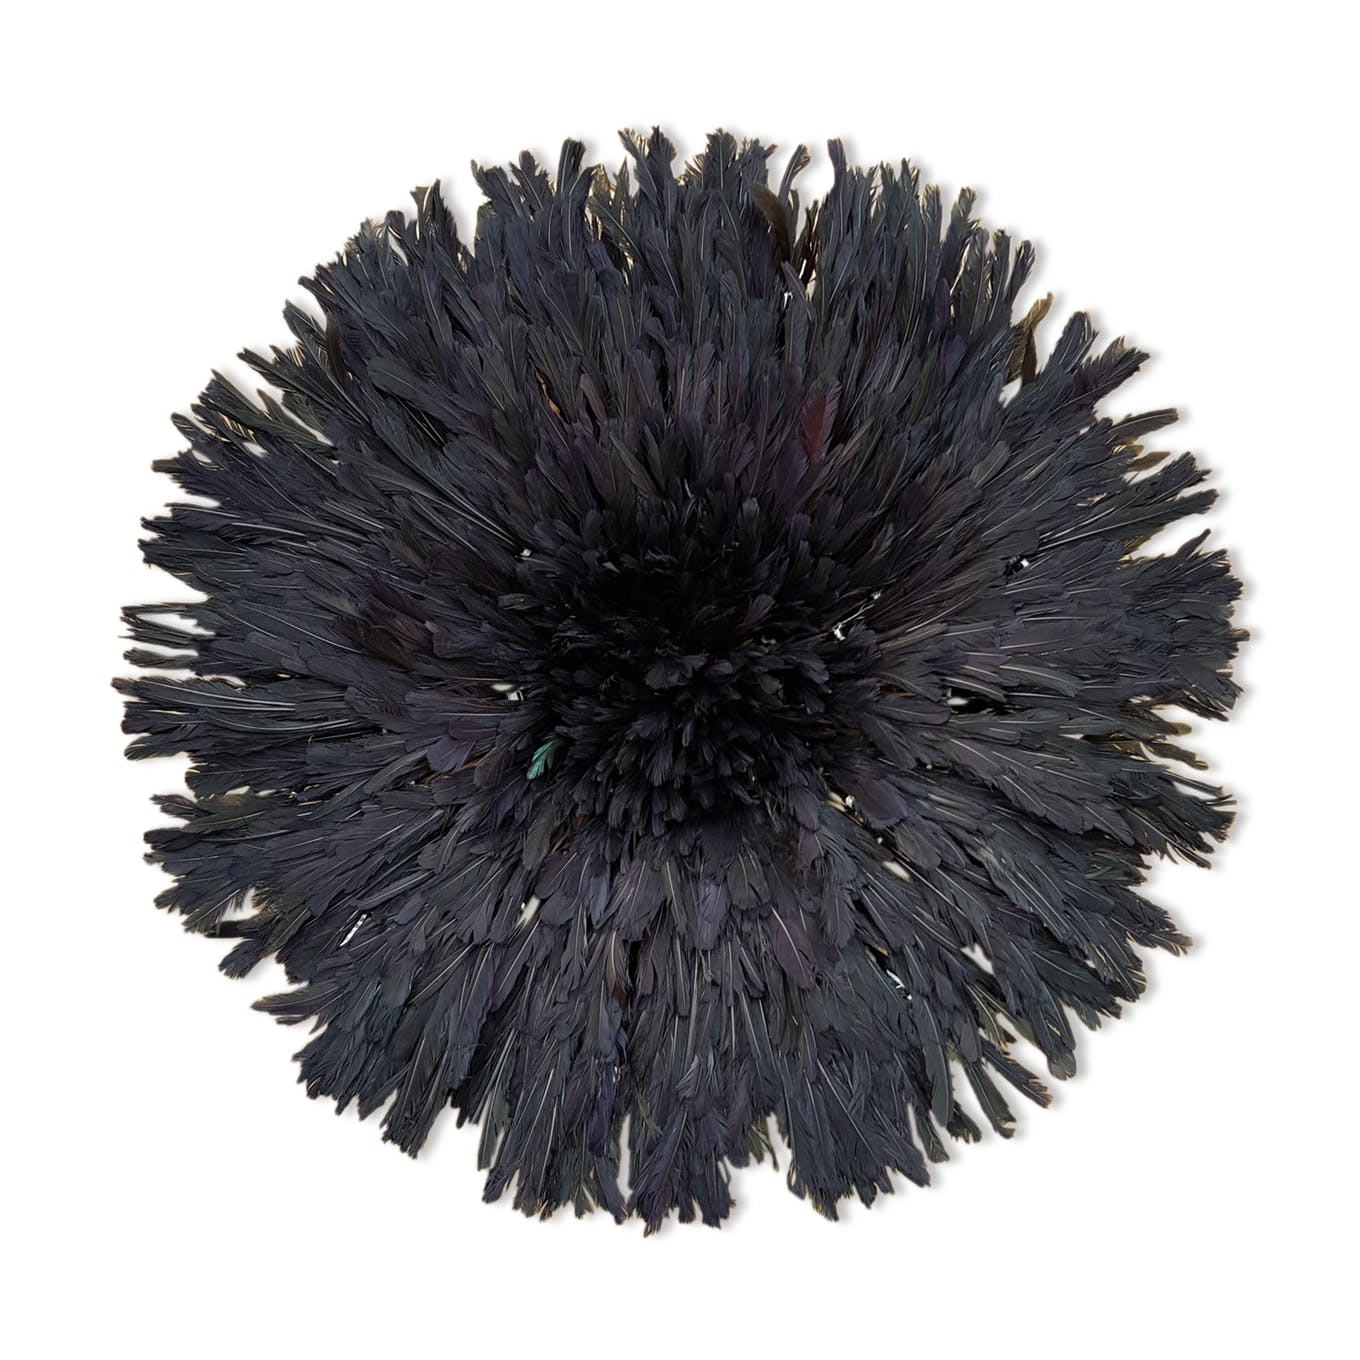 Black juju hat for an ethnic wall decoration